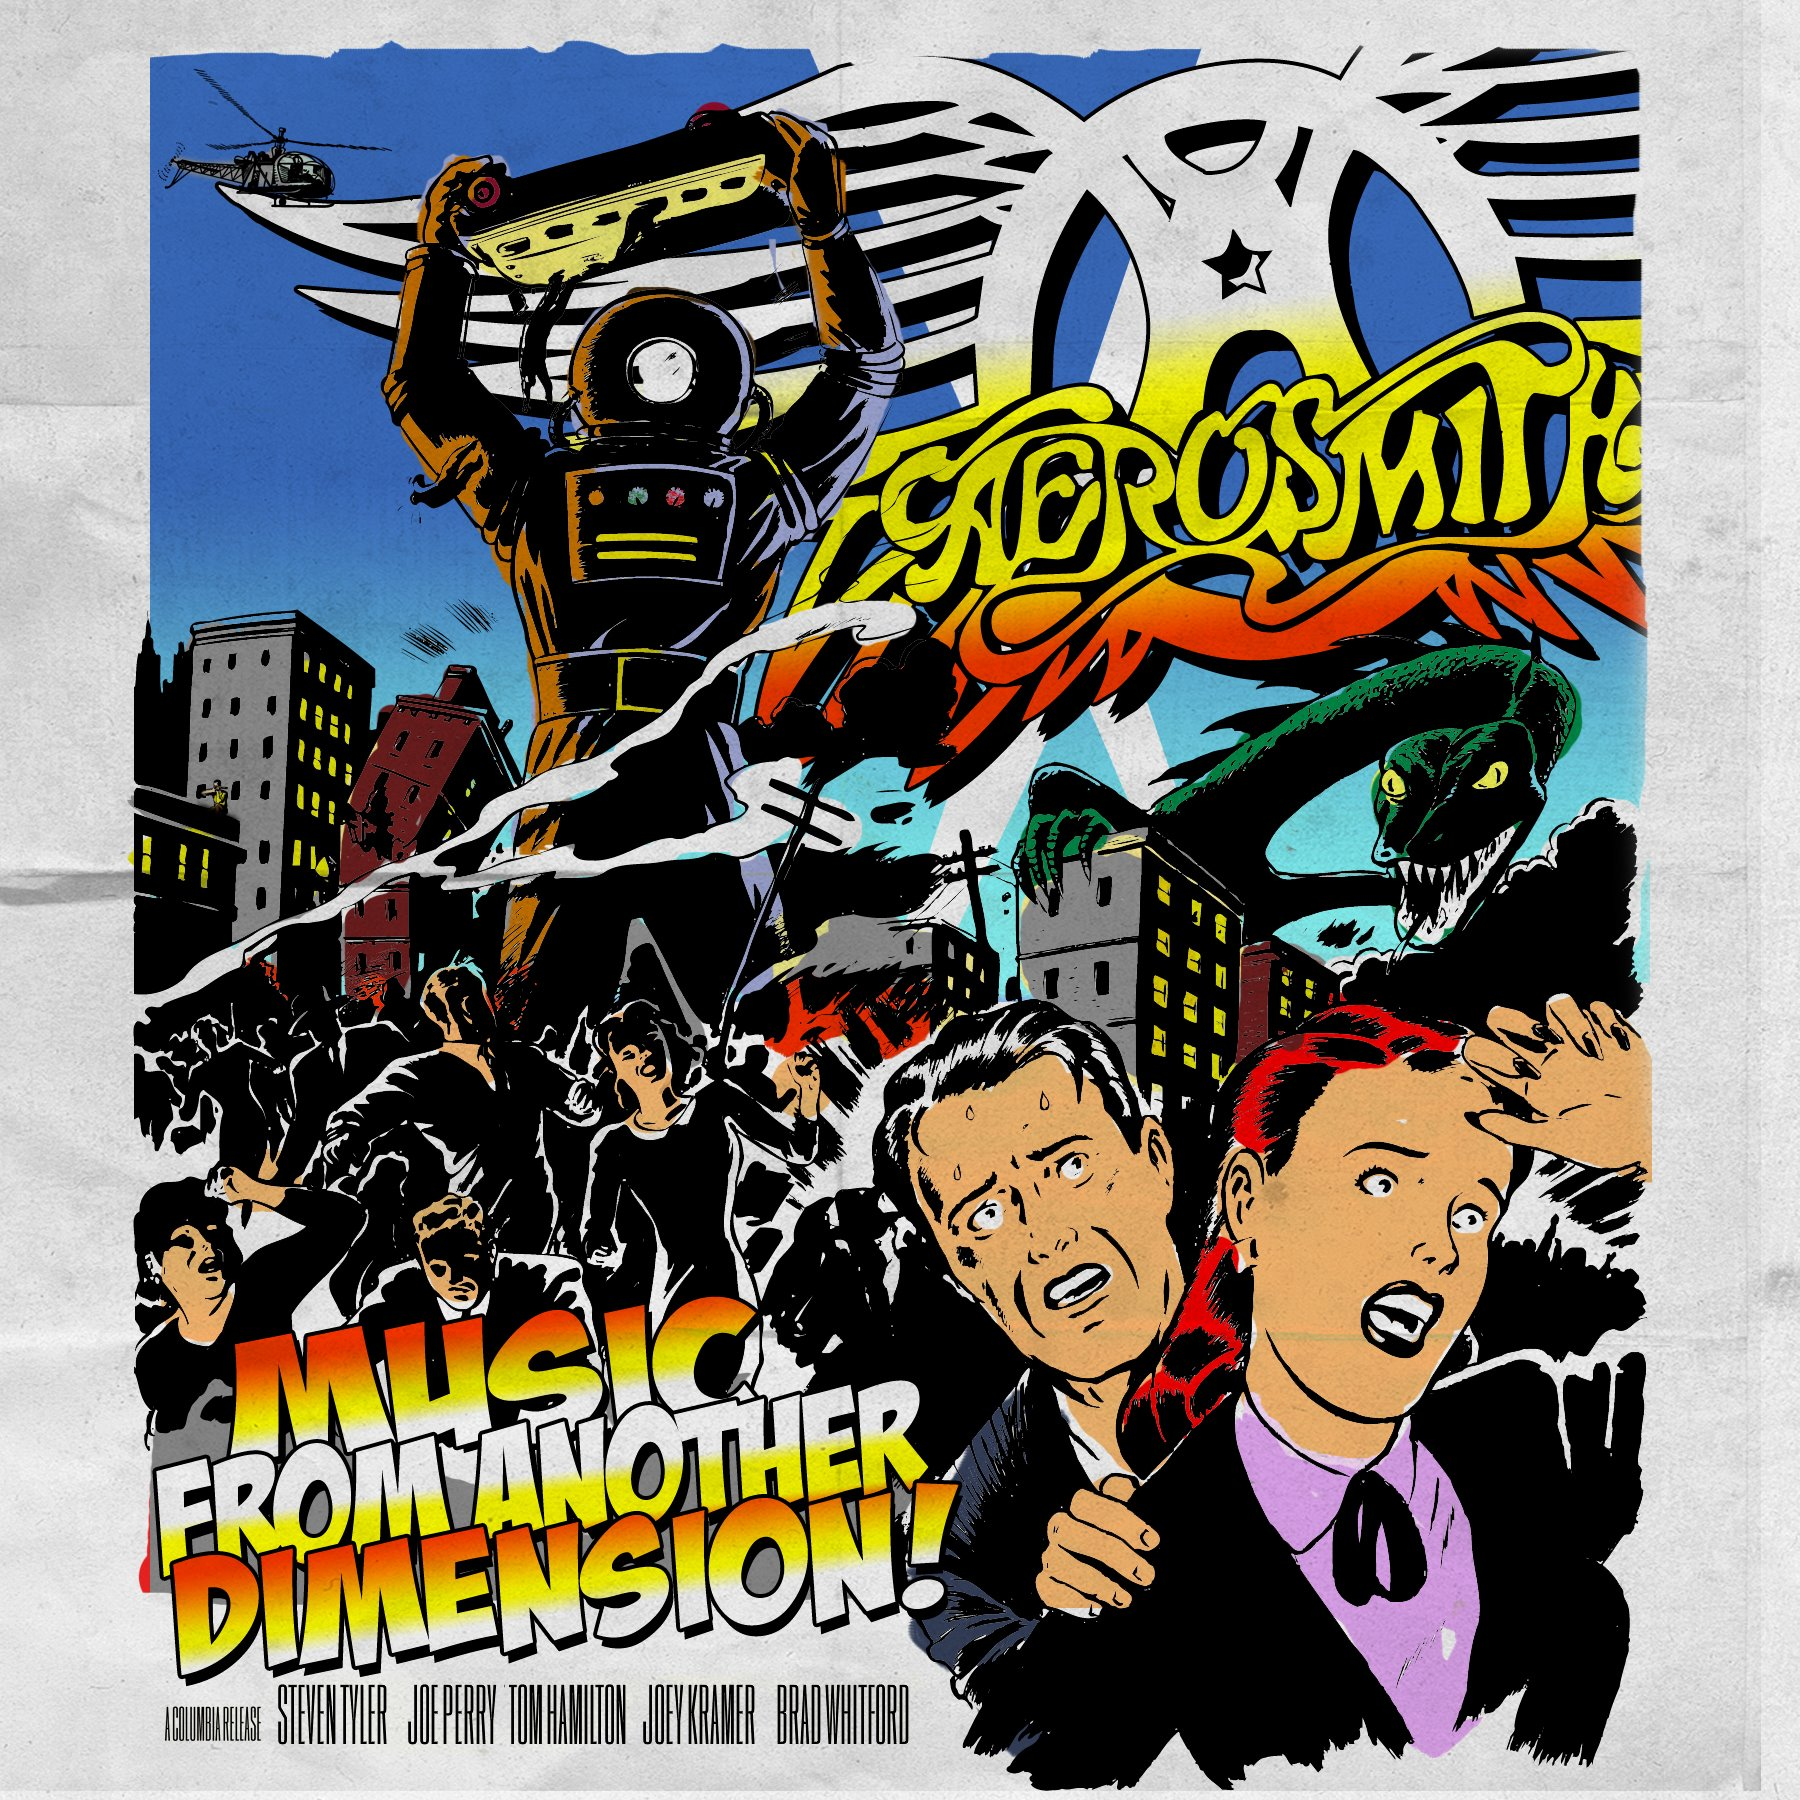 aerosmith-another-dimension.jpg